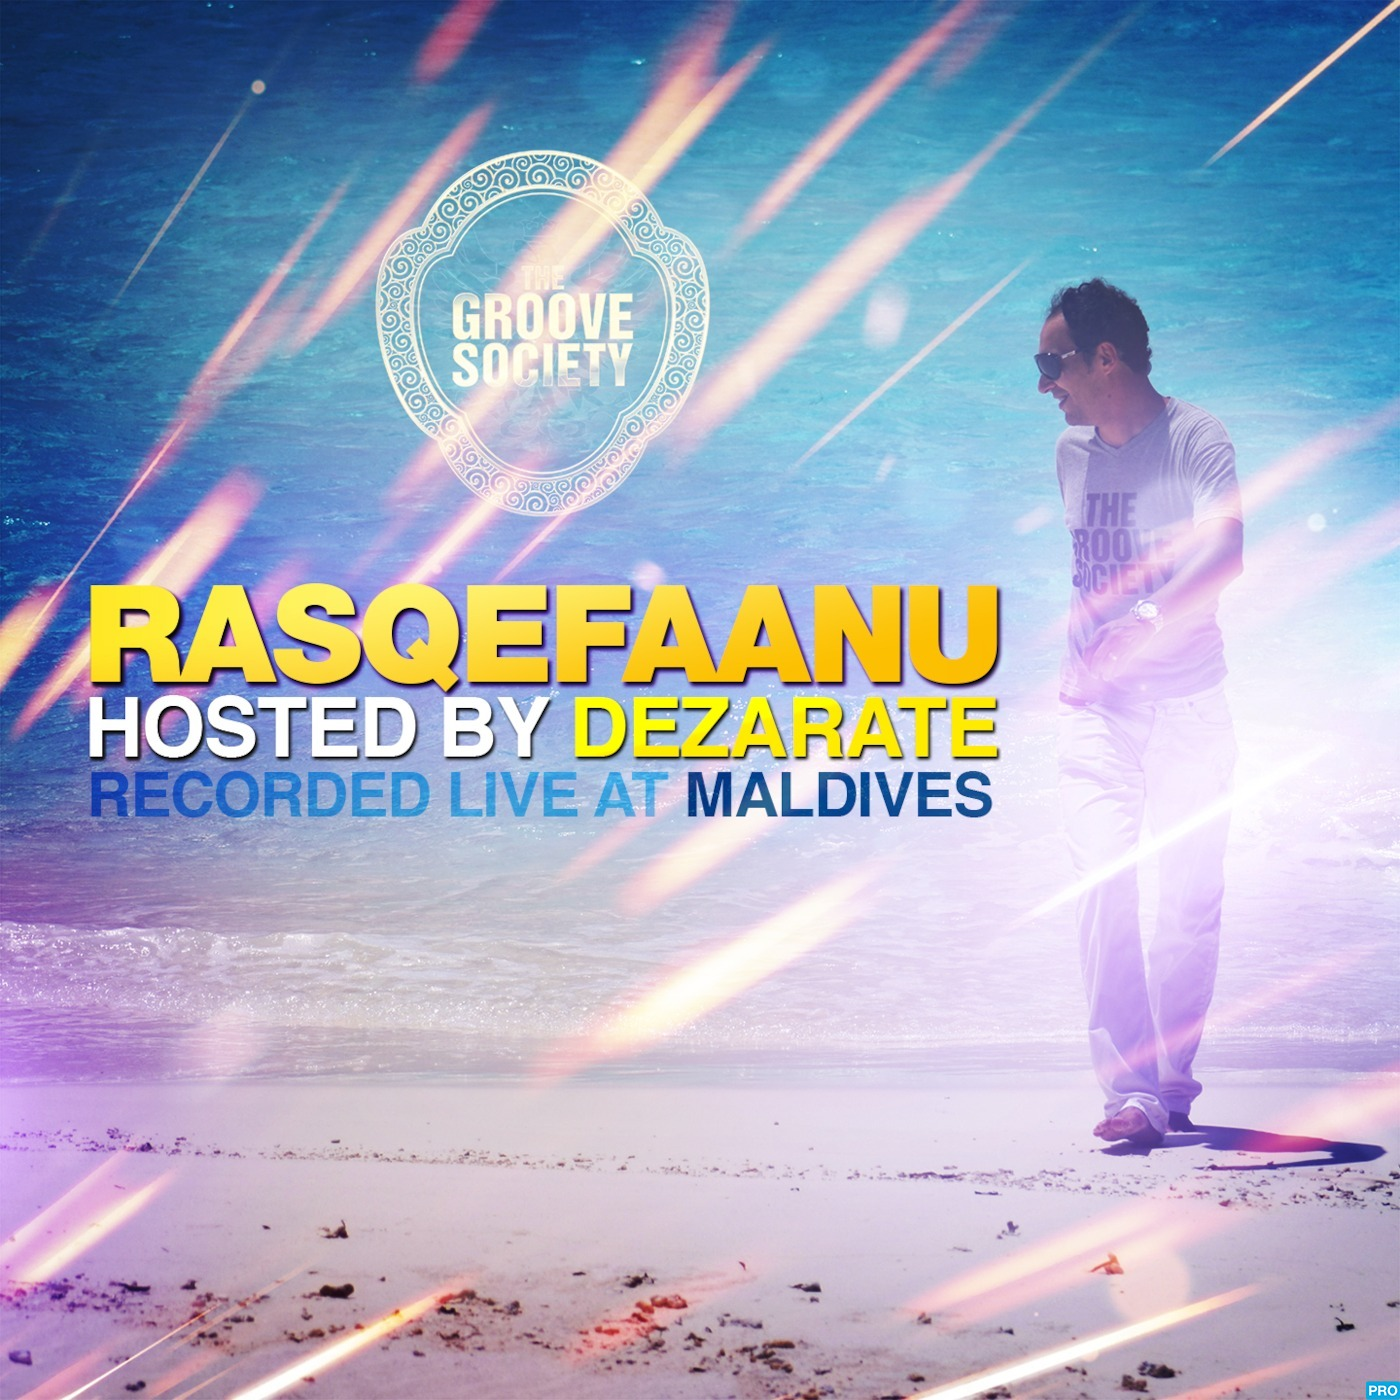 Rasqefaanu By The Groove Society